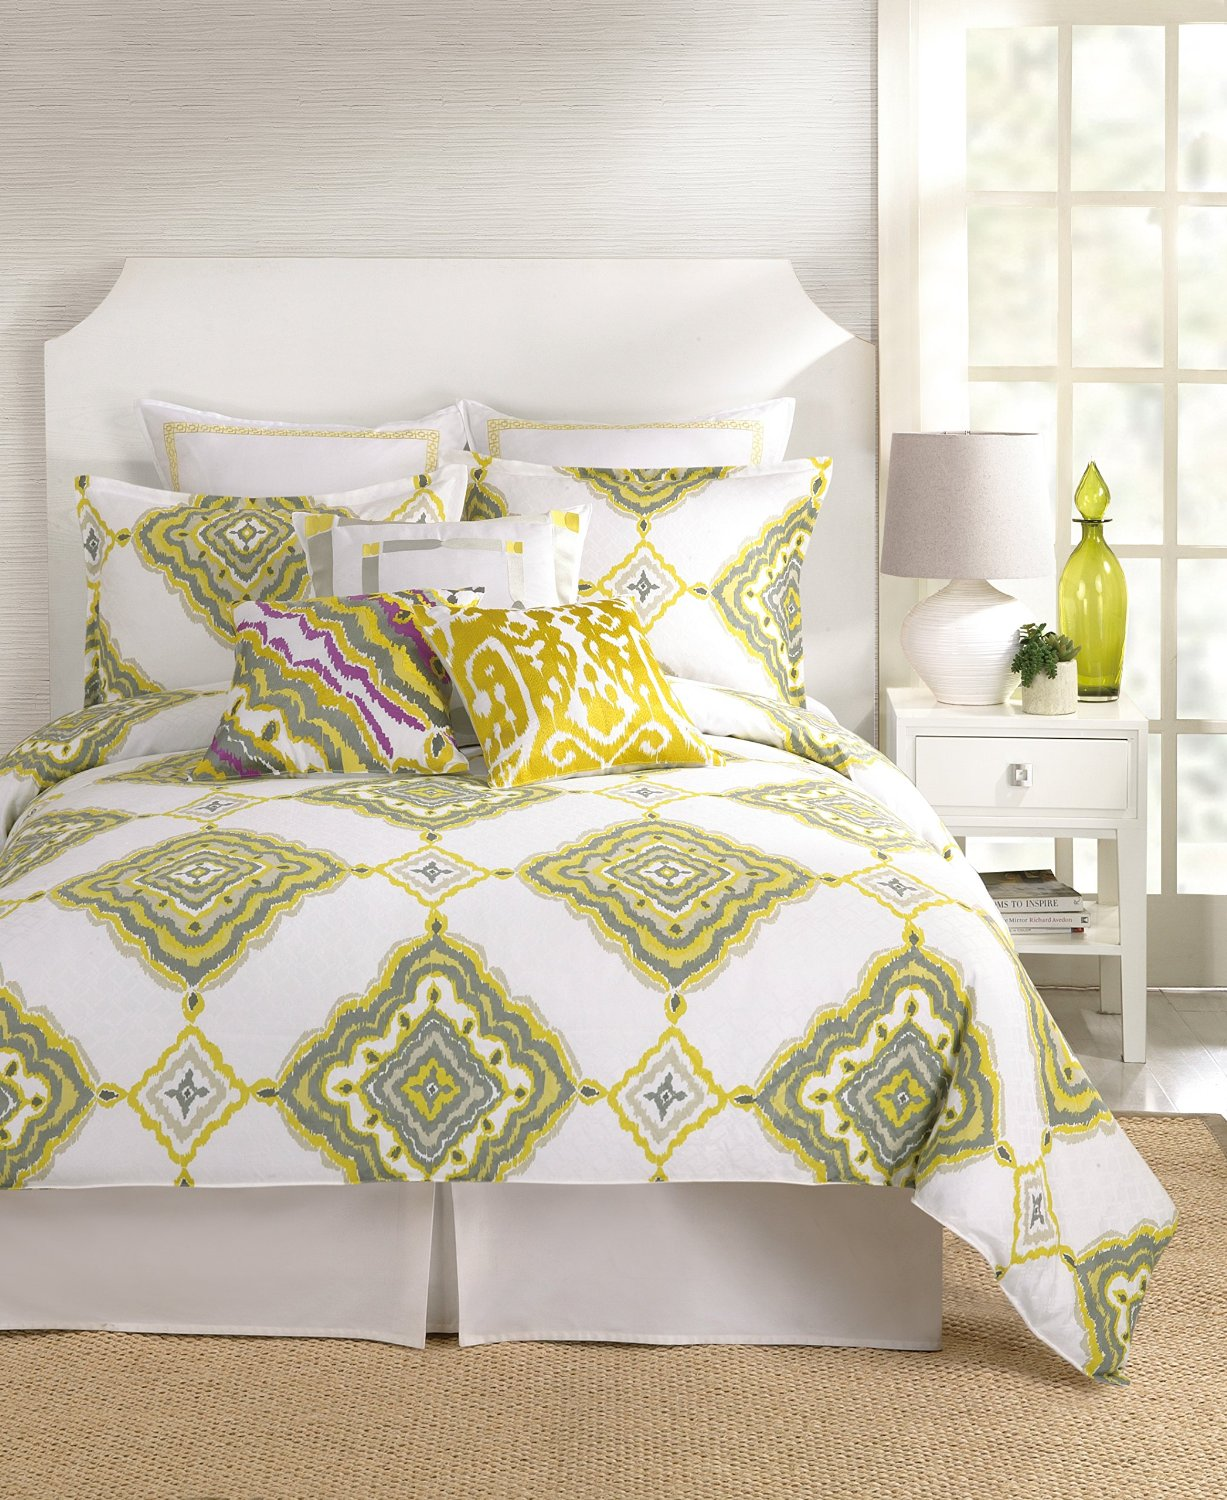 bedding sets kbul comforter mustard and comforters yellow